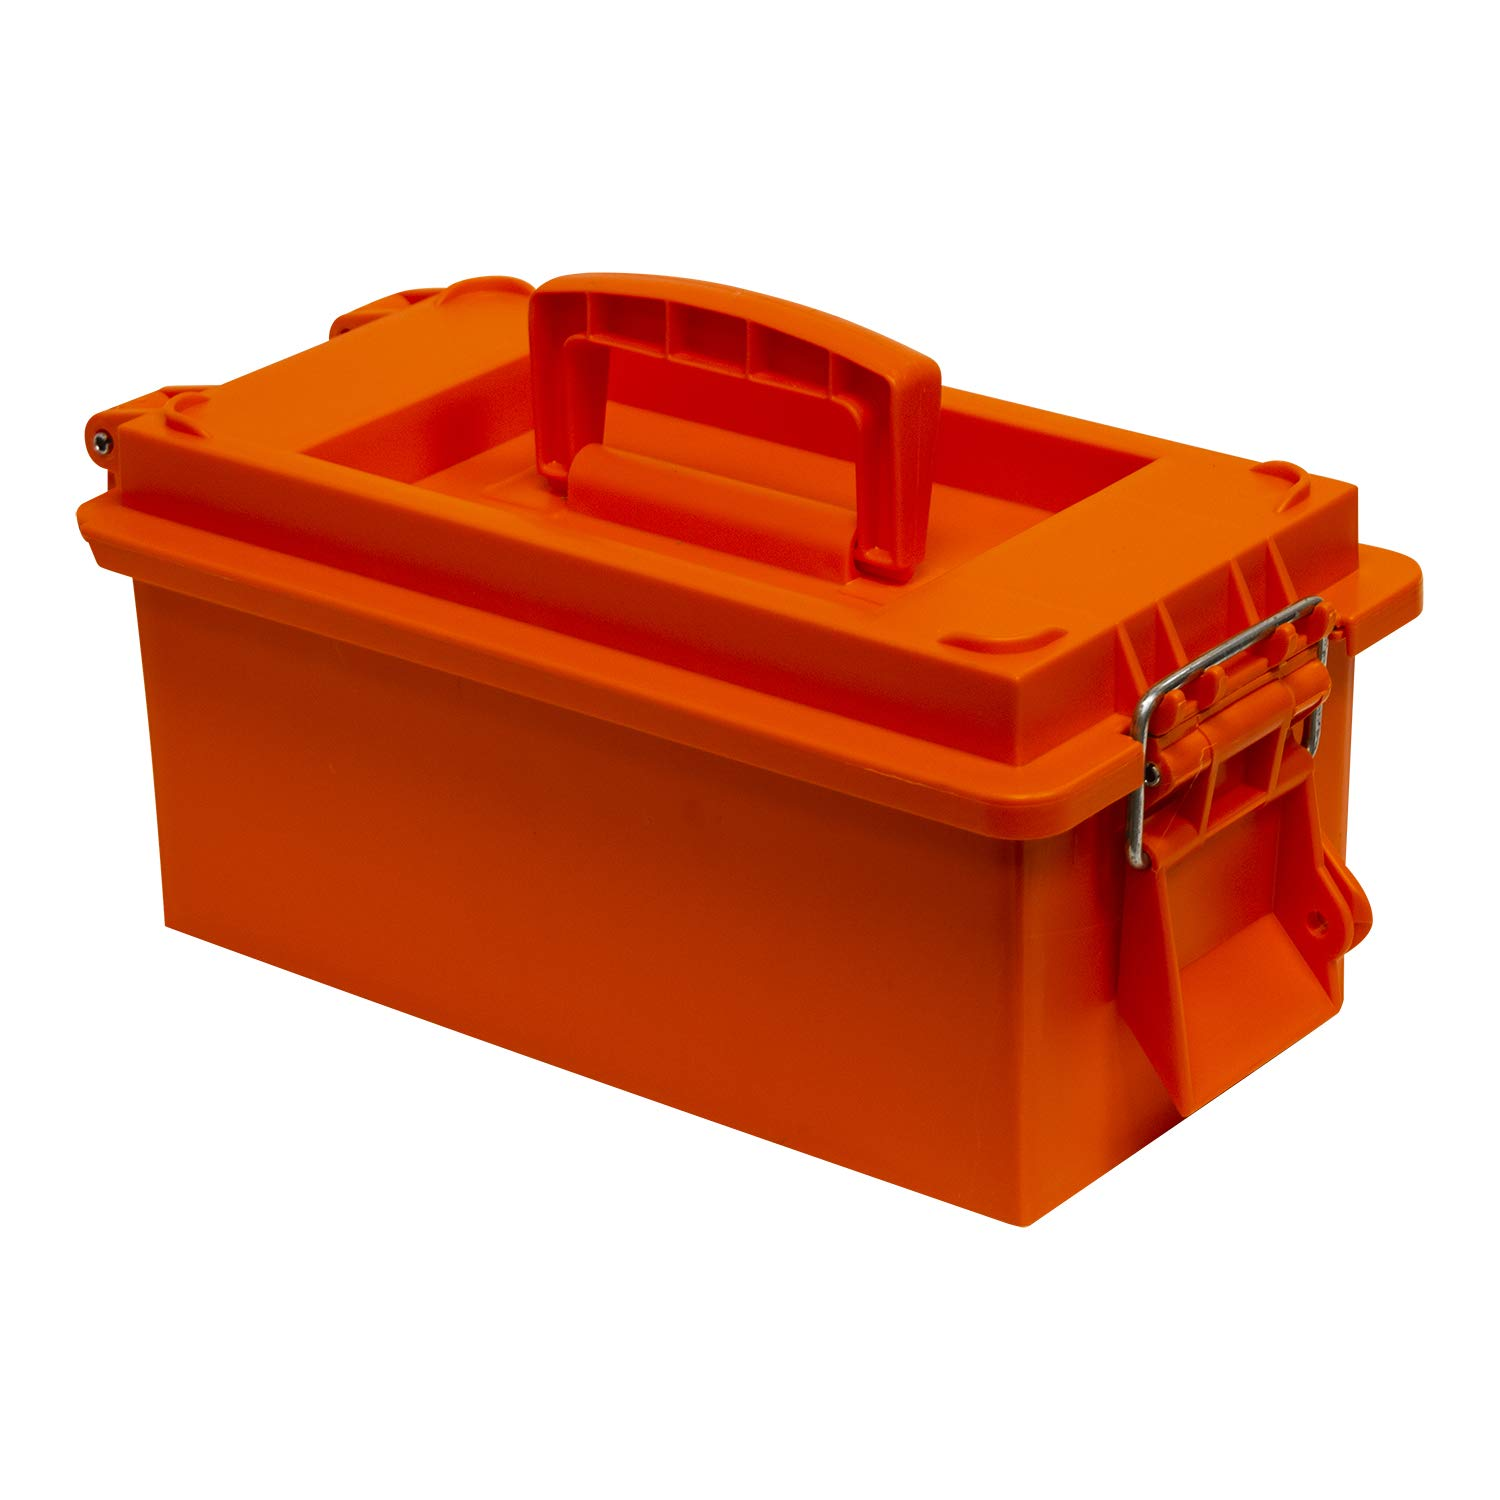 Wise Outdoors 5601-15 Small Utility Dry Box, Orange by Wise